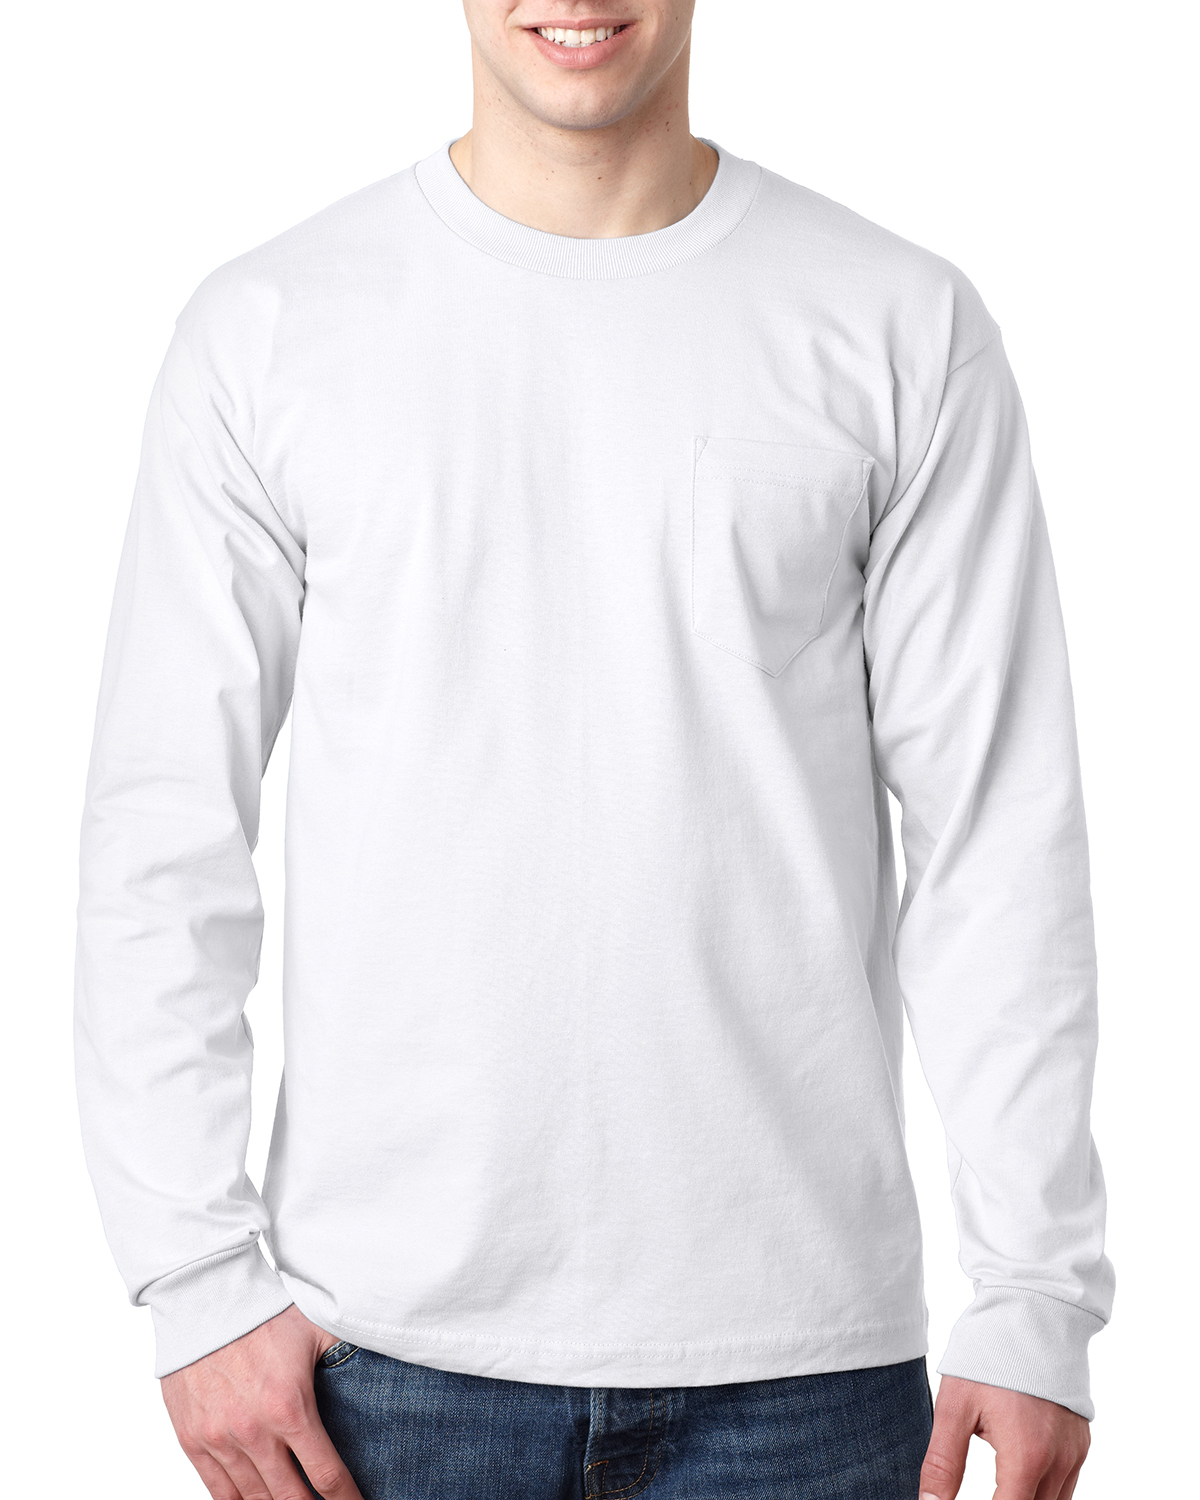 Bayside BA8100 - Adult Long-Sleeve Tee with Pocket